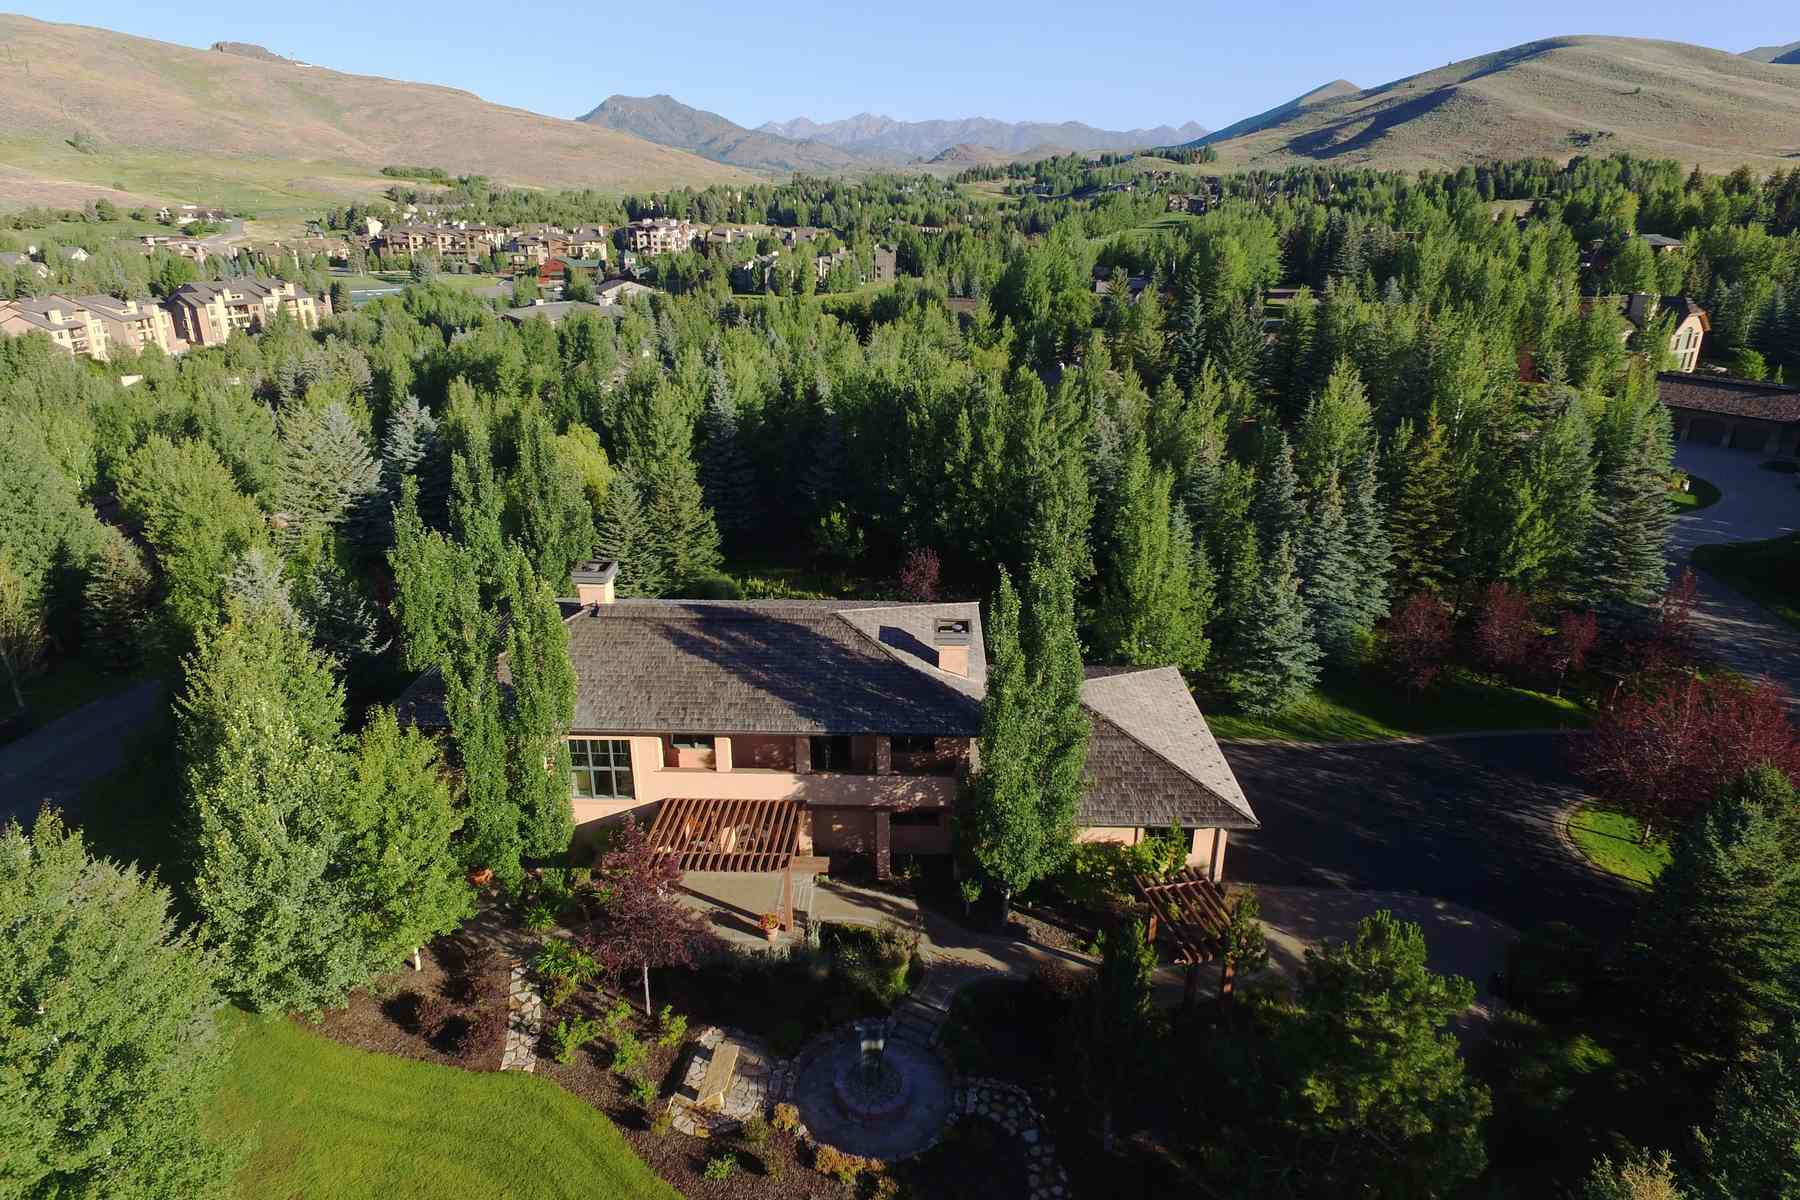 Single Family Home for Sale at Tuscany in Sun Valley 115 Highlands Dr Elkhorn, Sun Valley, Idaho, 83353 United States